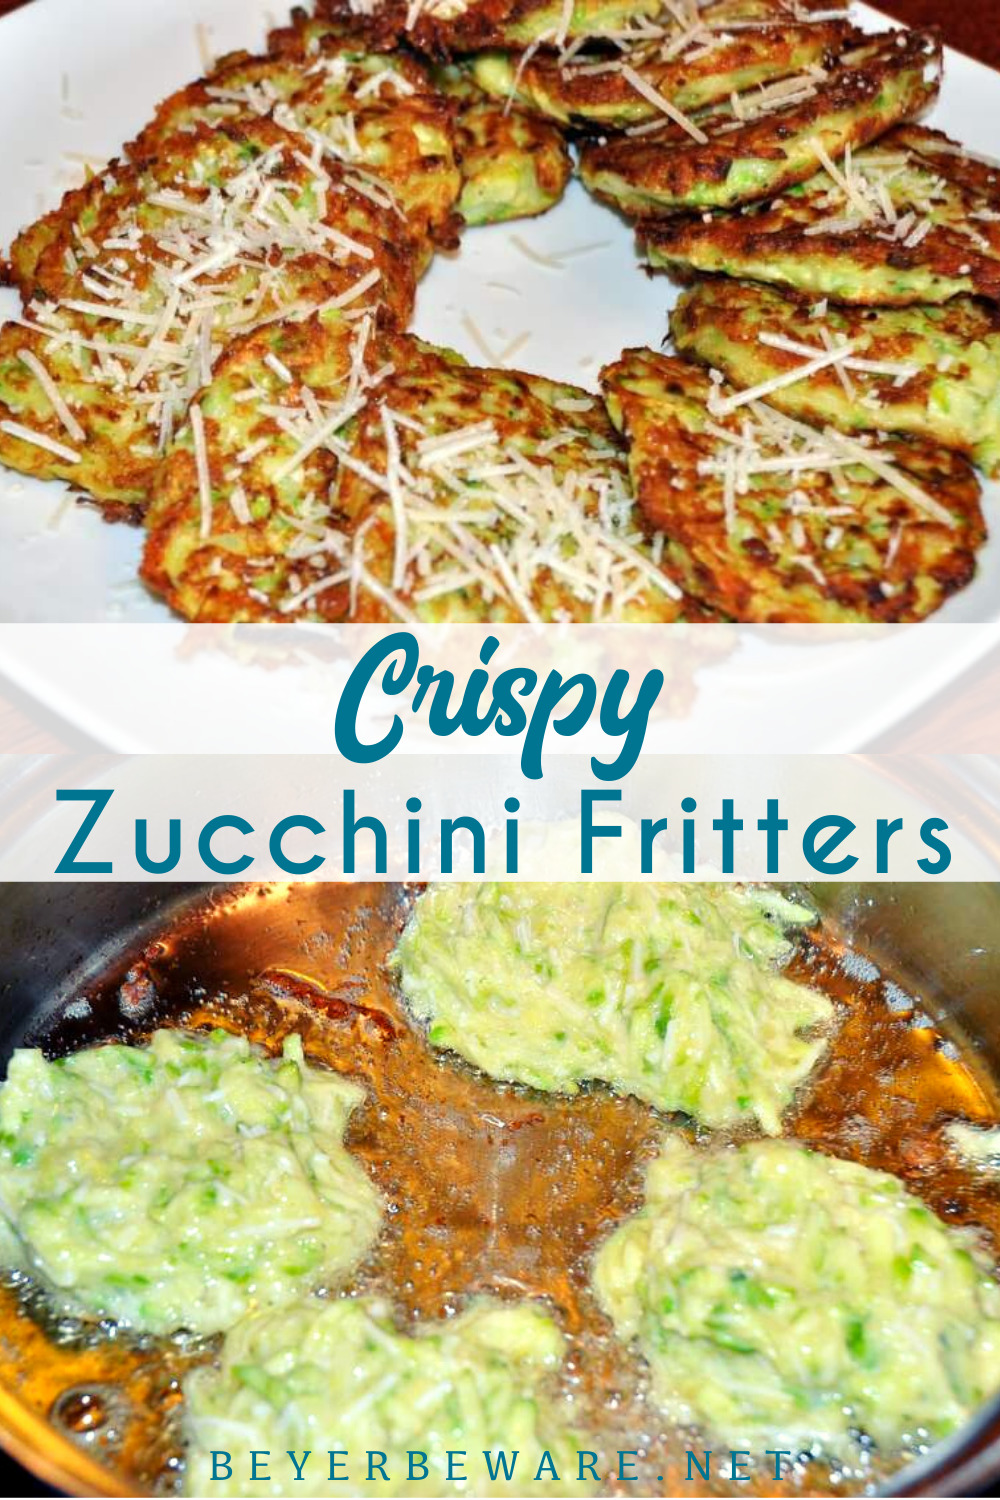 Crispy zucchini fritters are a simple recipe to use zucchini in a pan-fried fritter that even people who aren't vegetable lovers will eat. Put some ranch on the side to dip these zucchini fritters in and everyone will love this finger food.